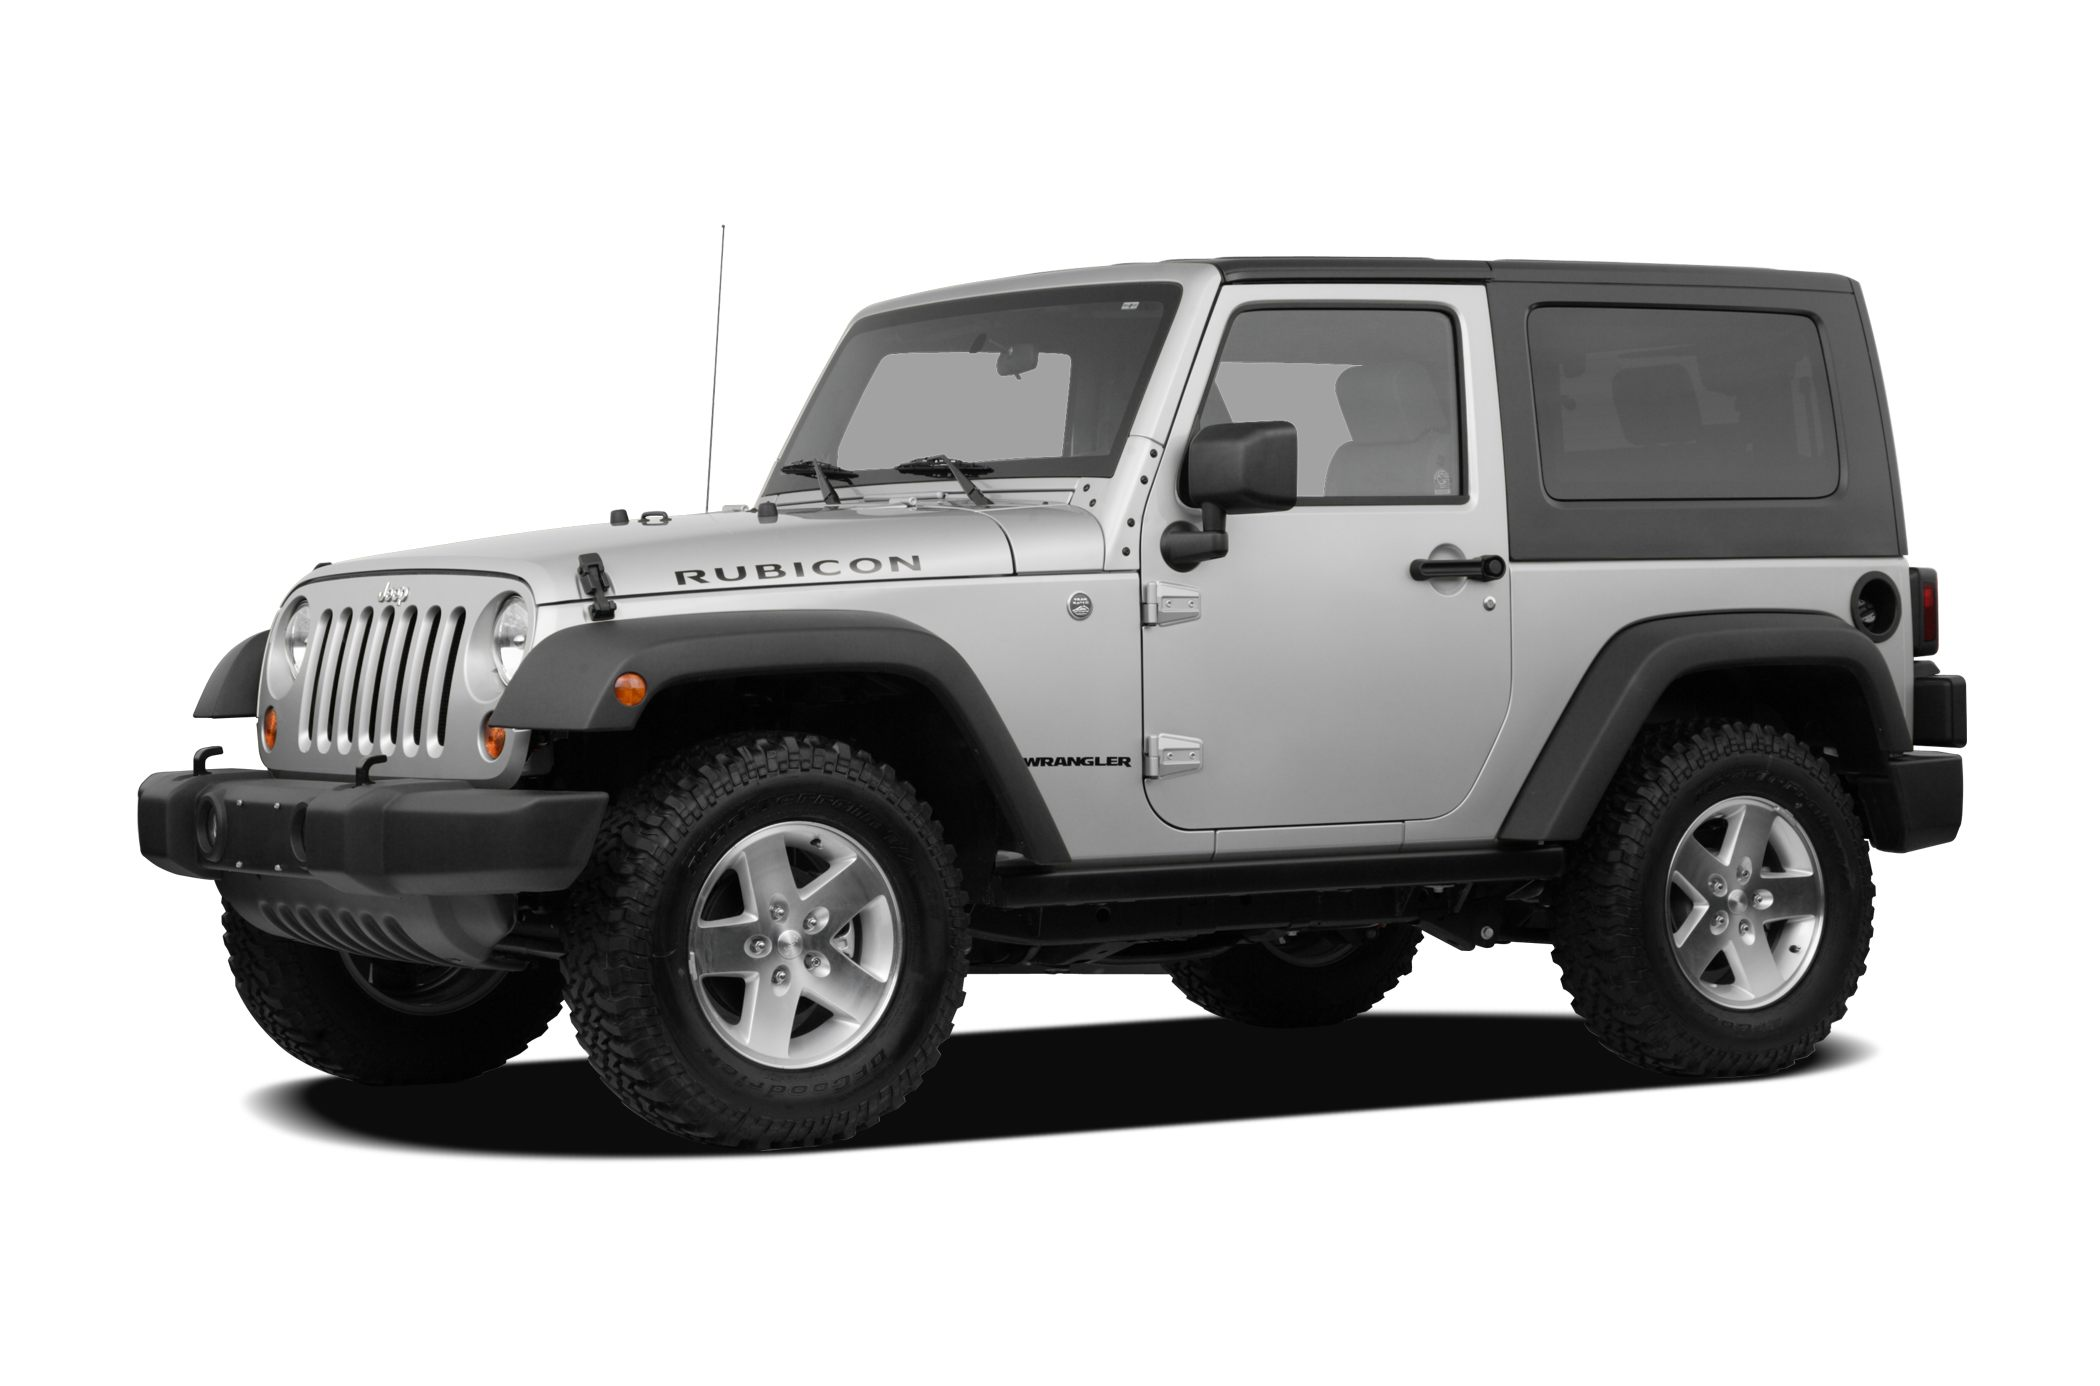 2010 Jeep Wrangler Sport This 2010 Jeep Wrangler is in excellent condition Clean soft top with no